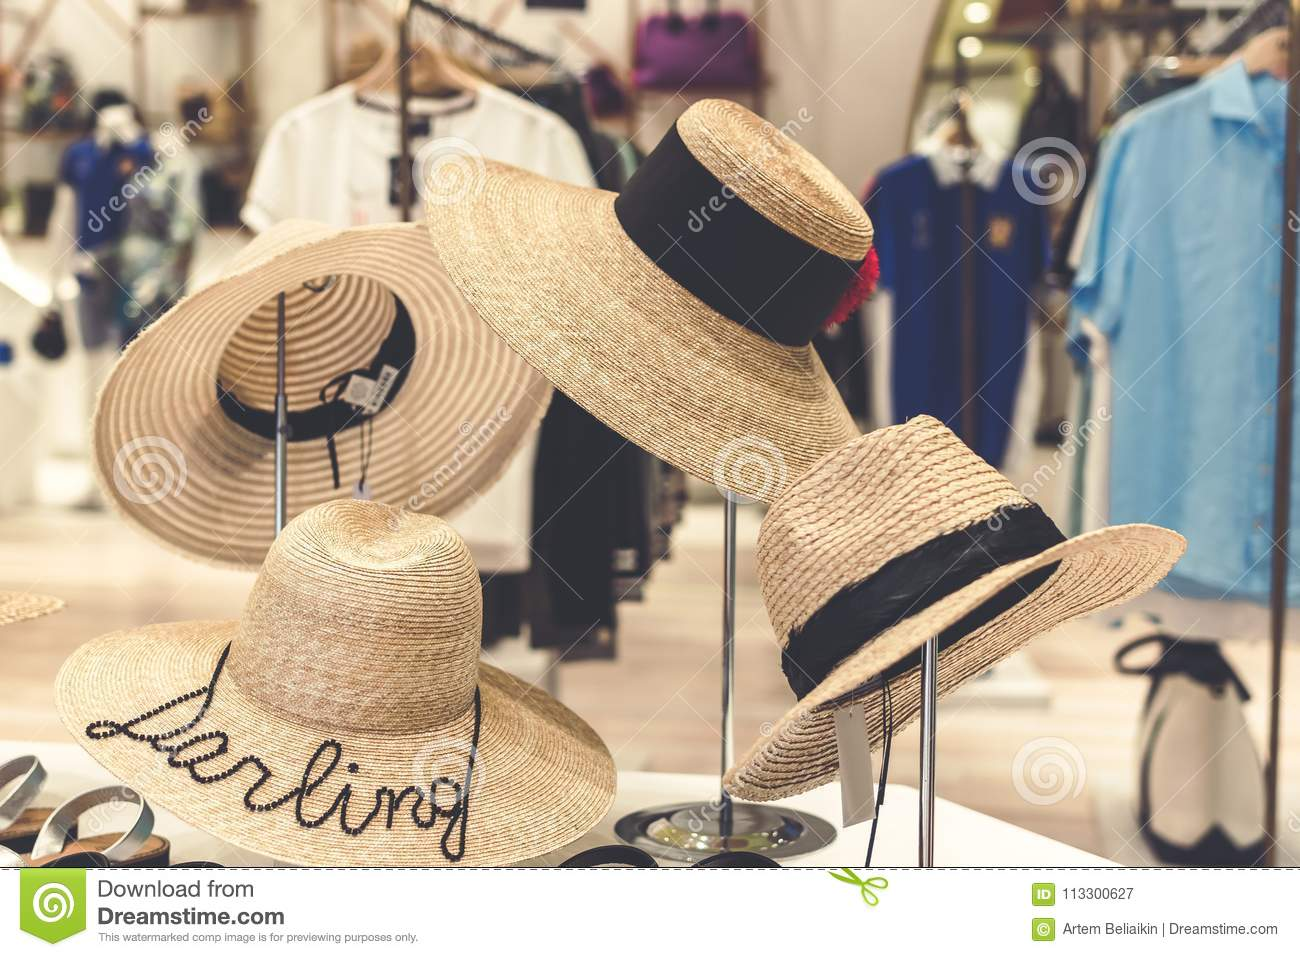 Straw hats ganging in the store. Bali. Shopping and travel concept.